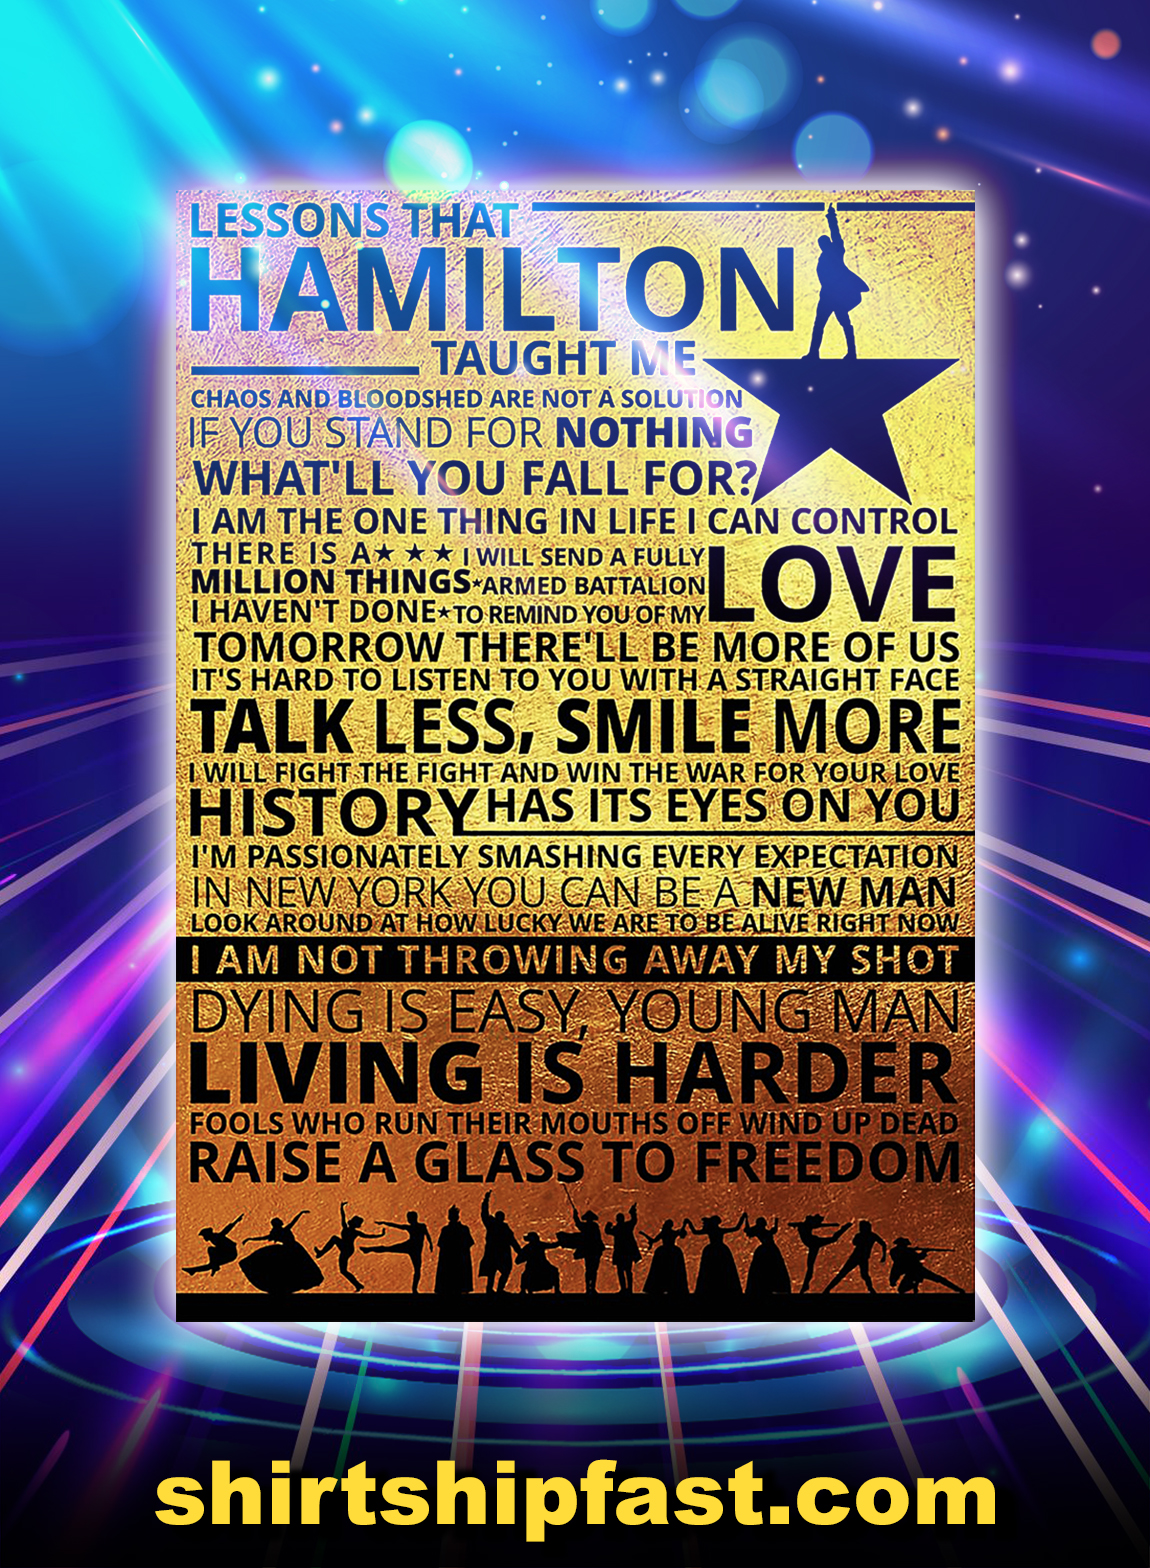 Lessons hamilton taught me poster - A3